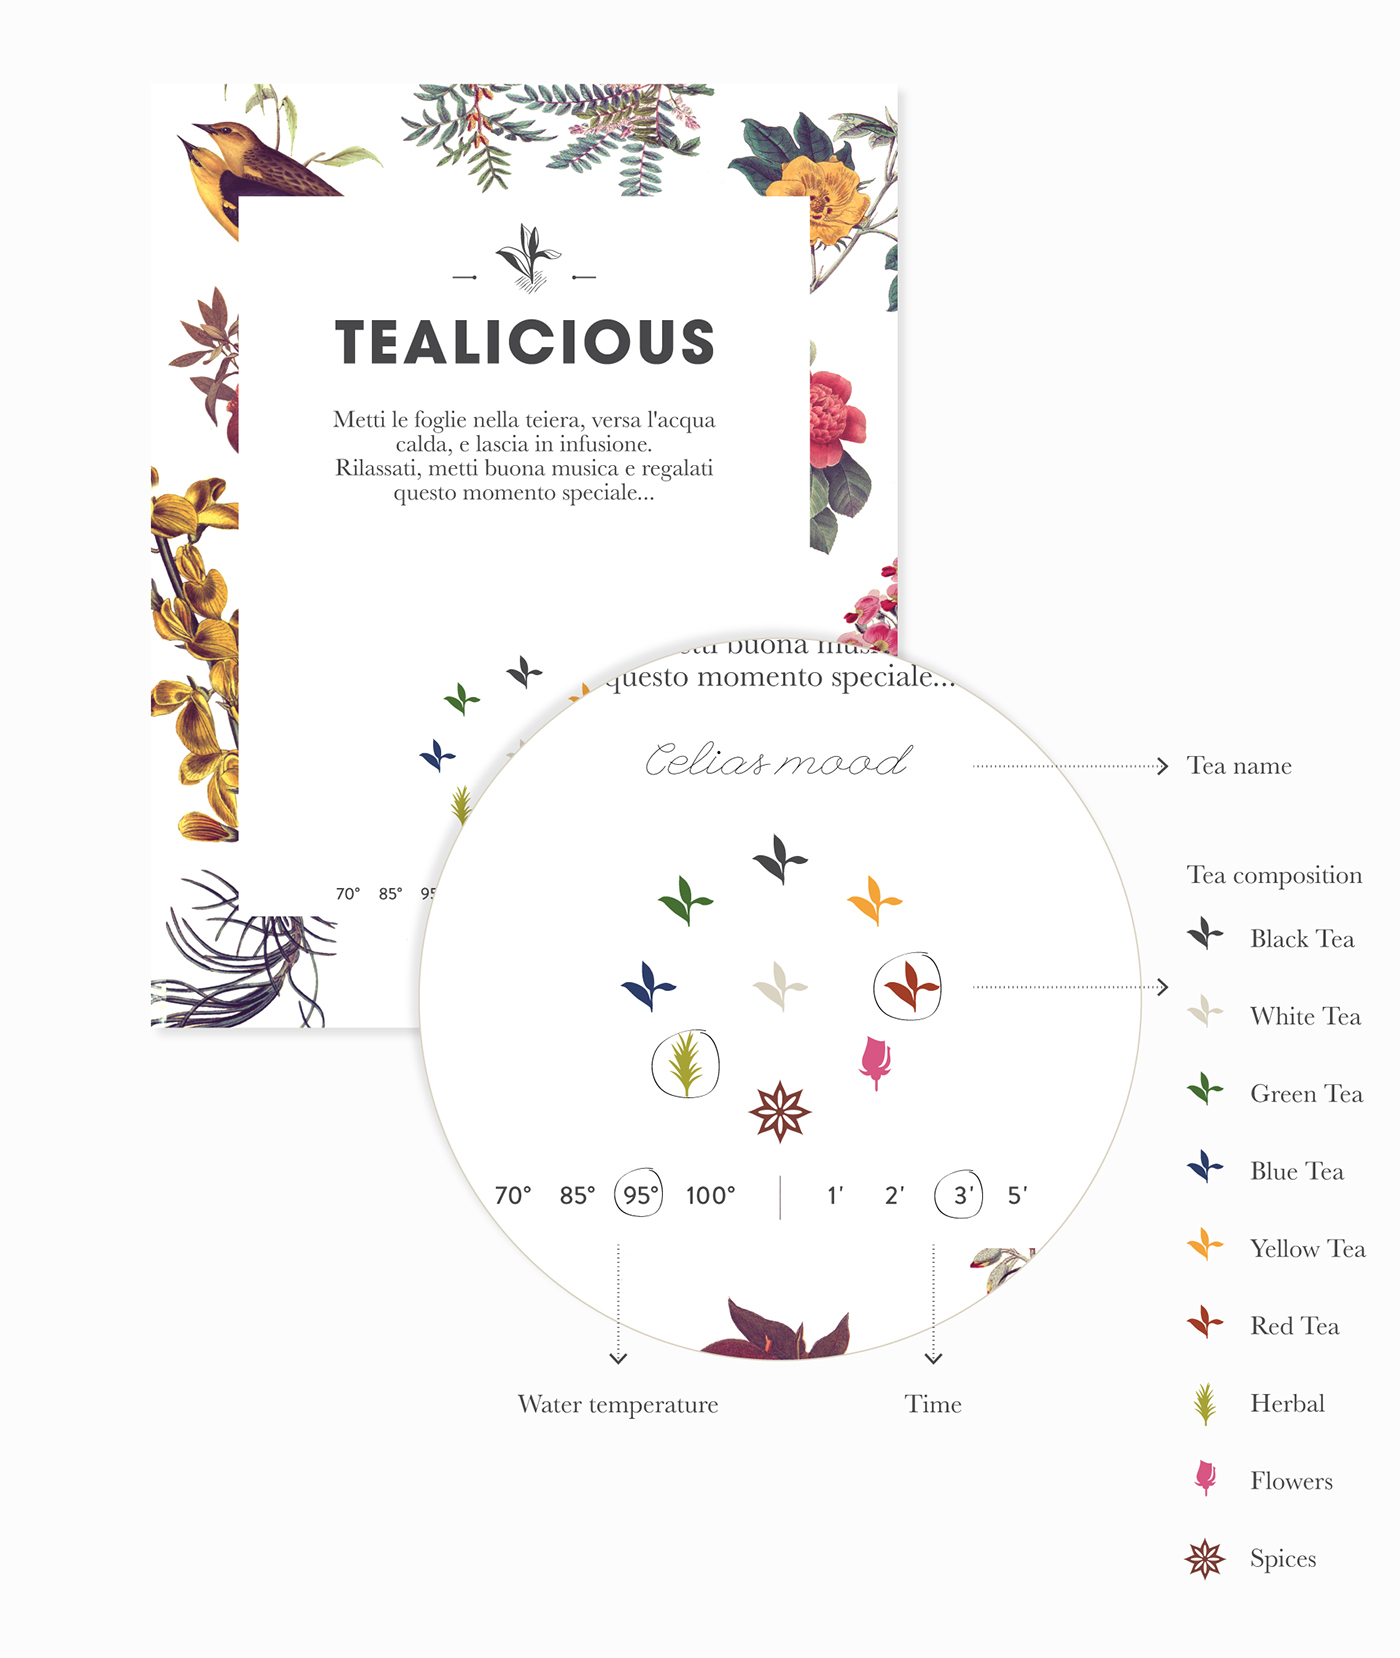 Tealicious illustrations and branding by Alvarez Juana